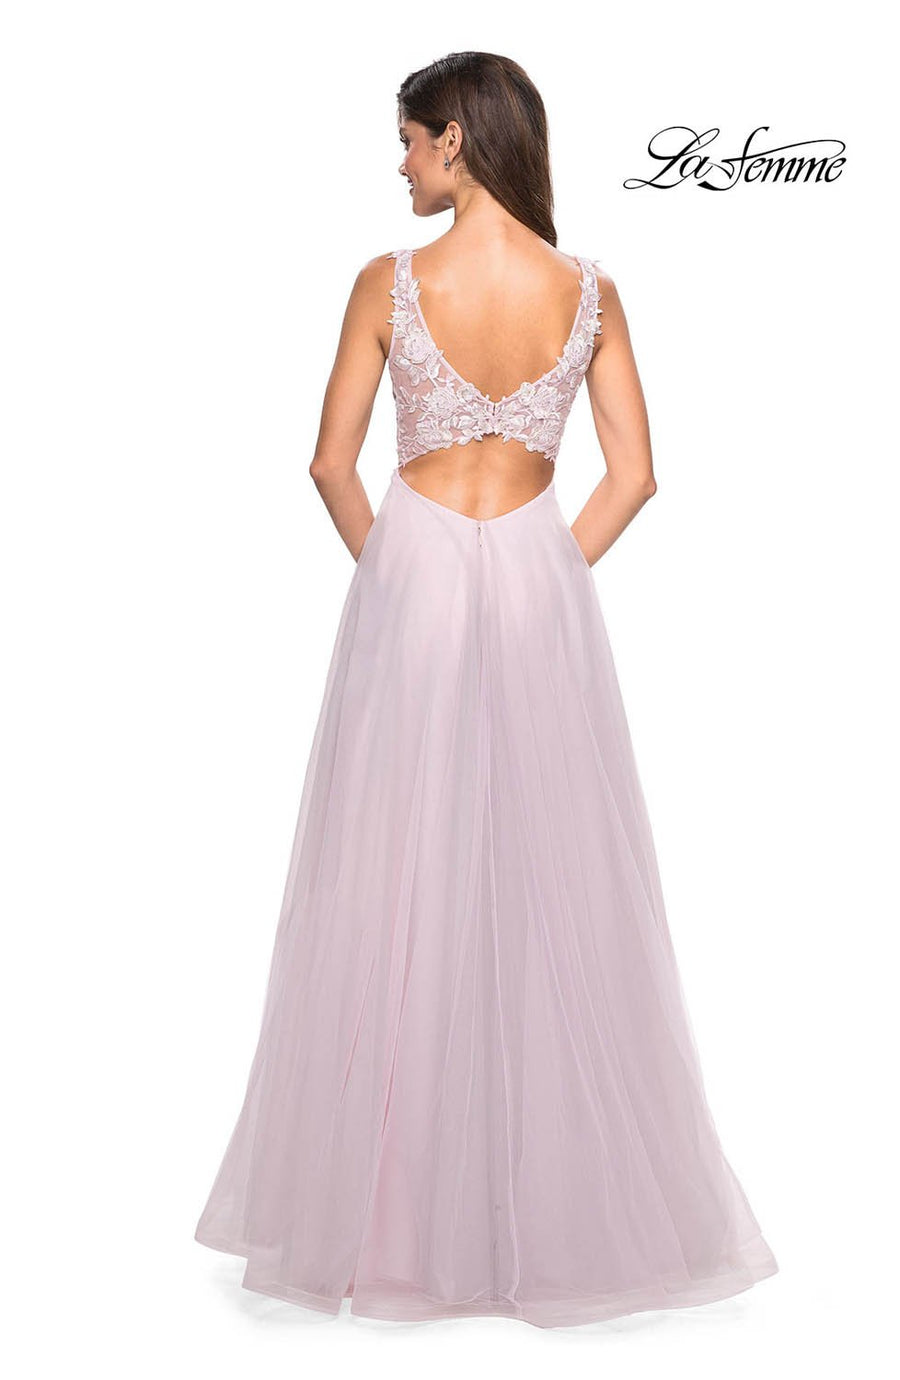 La Femme 27621 prom dress images.  La Femme 27621 is available in these colors: Cloud Blue, Light Pink.